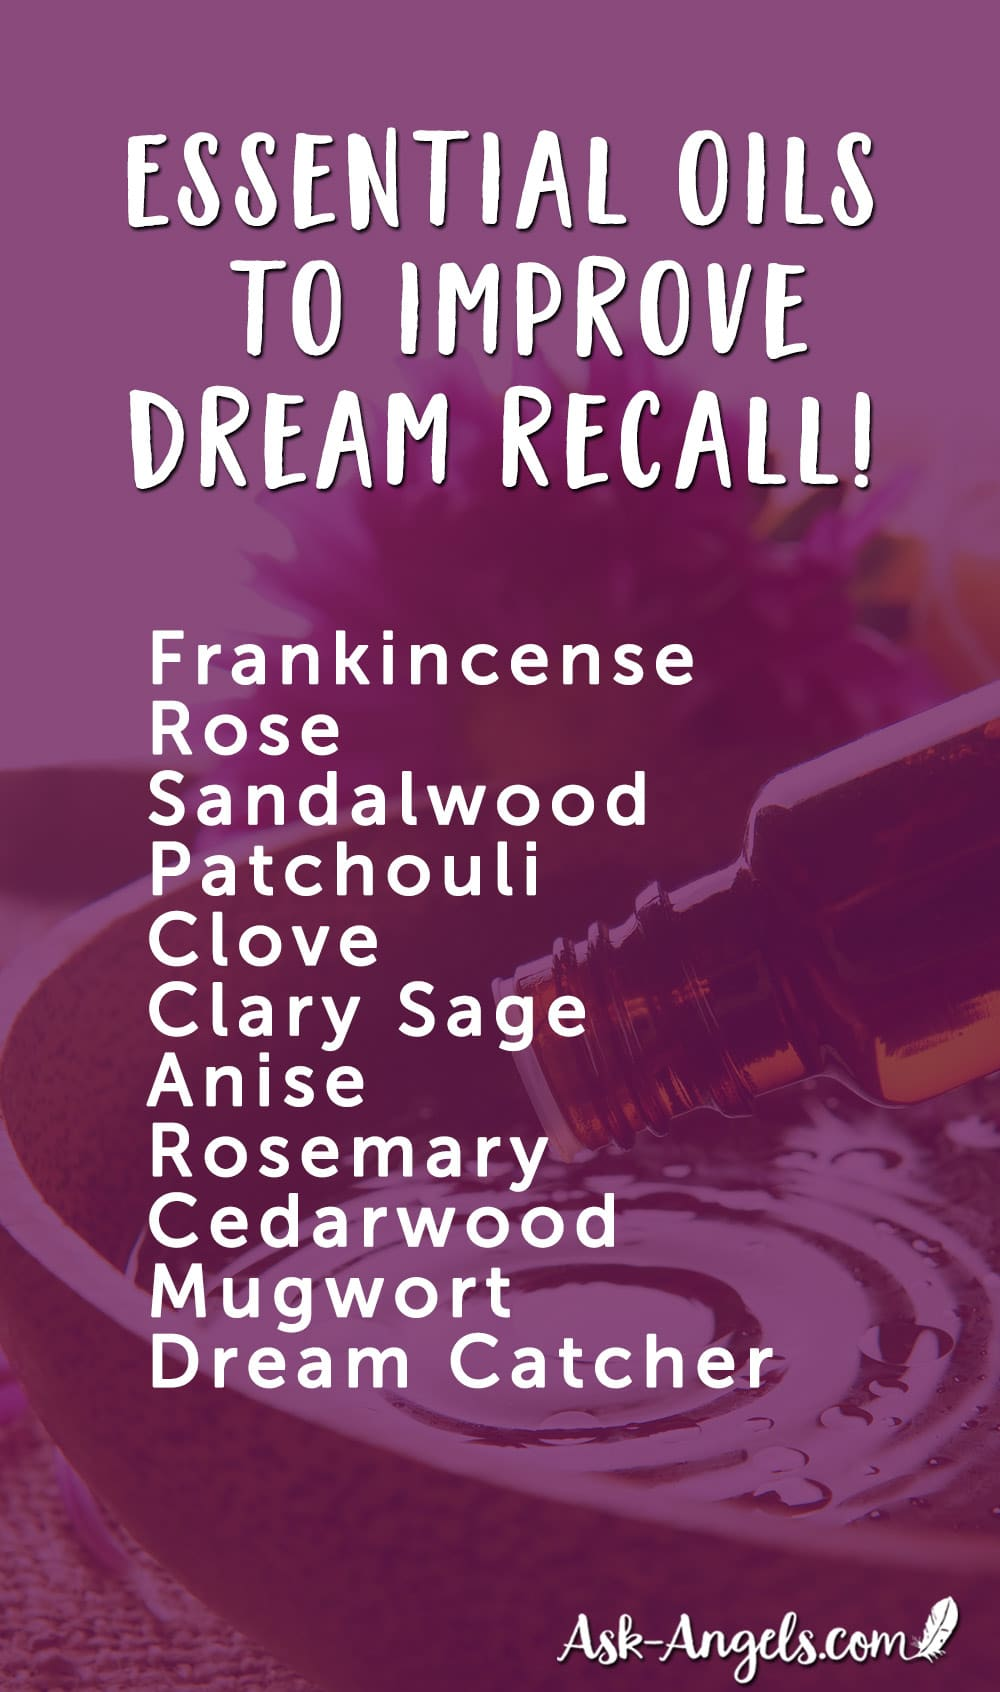 Essential Oils For Remembering Dreams